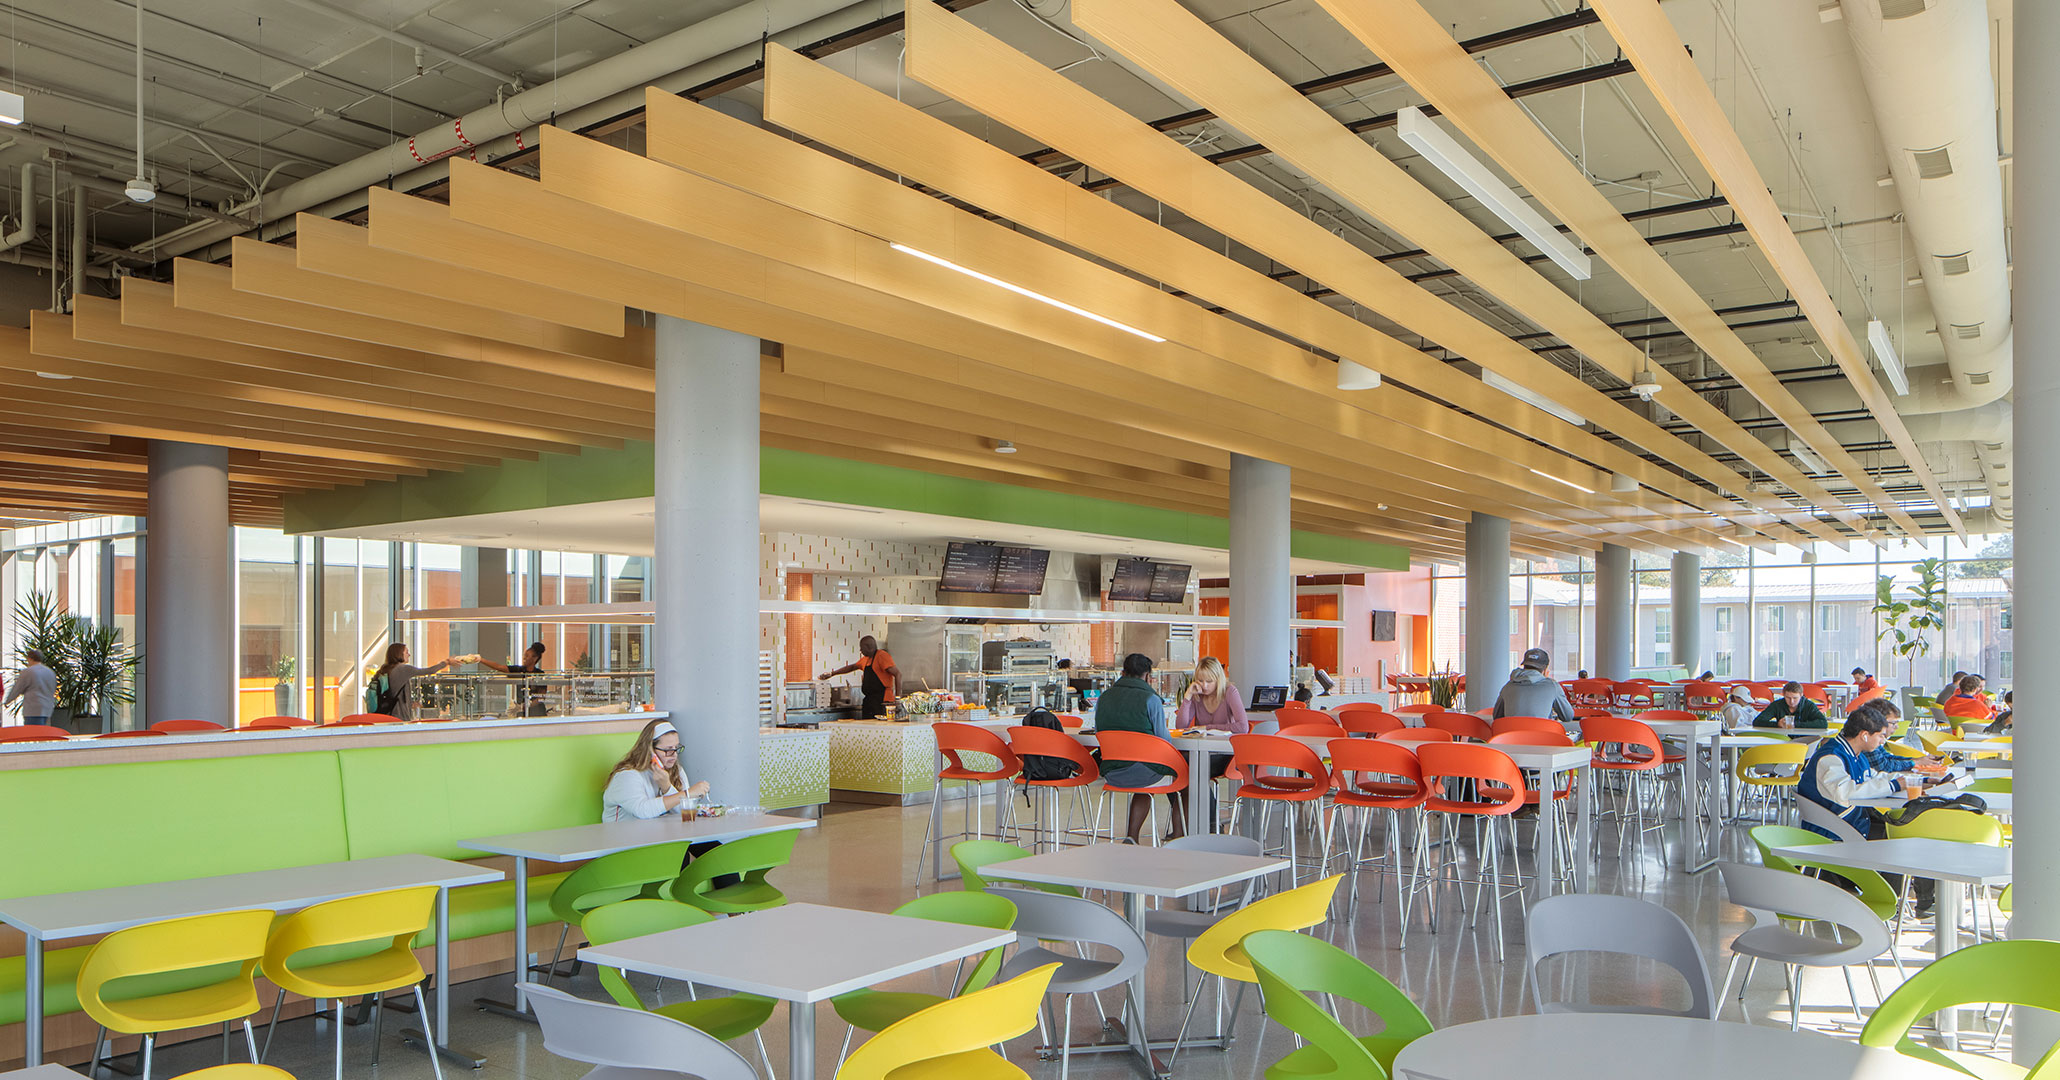 Clemson University worked with Boudreaux architects to design the café at Douthit Hills Student Hub.